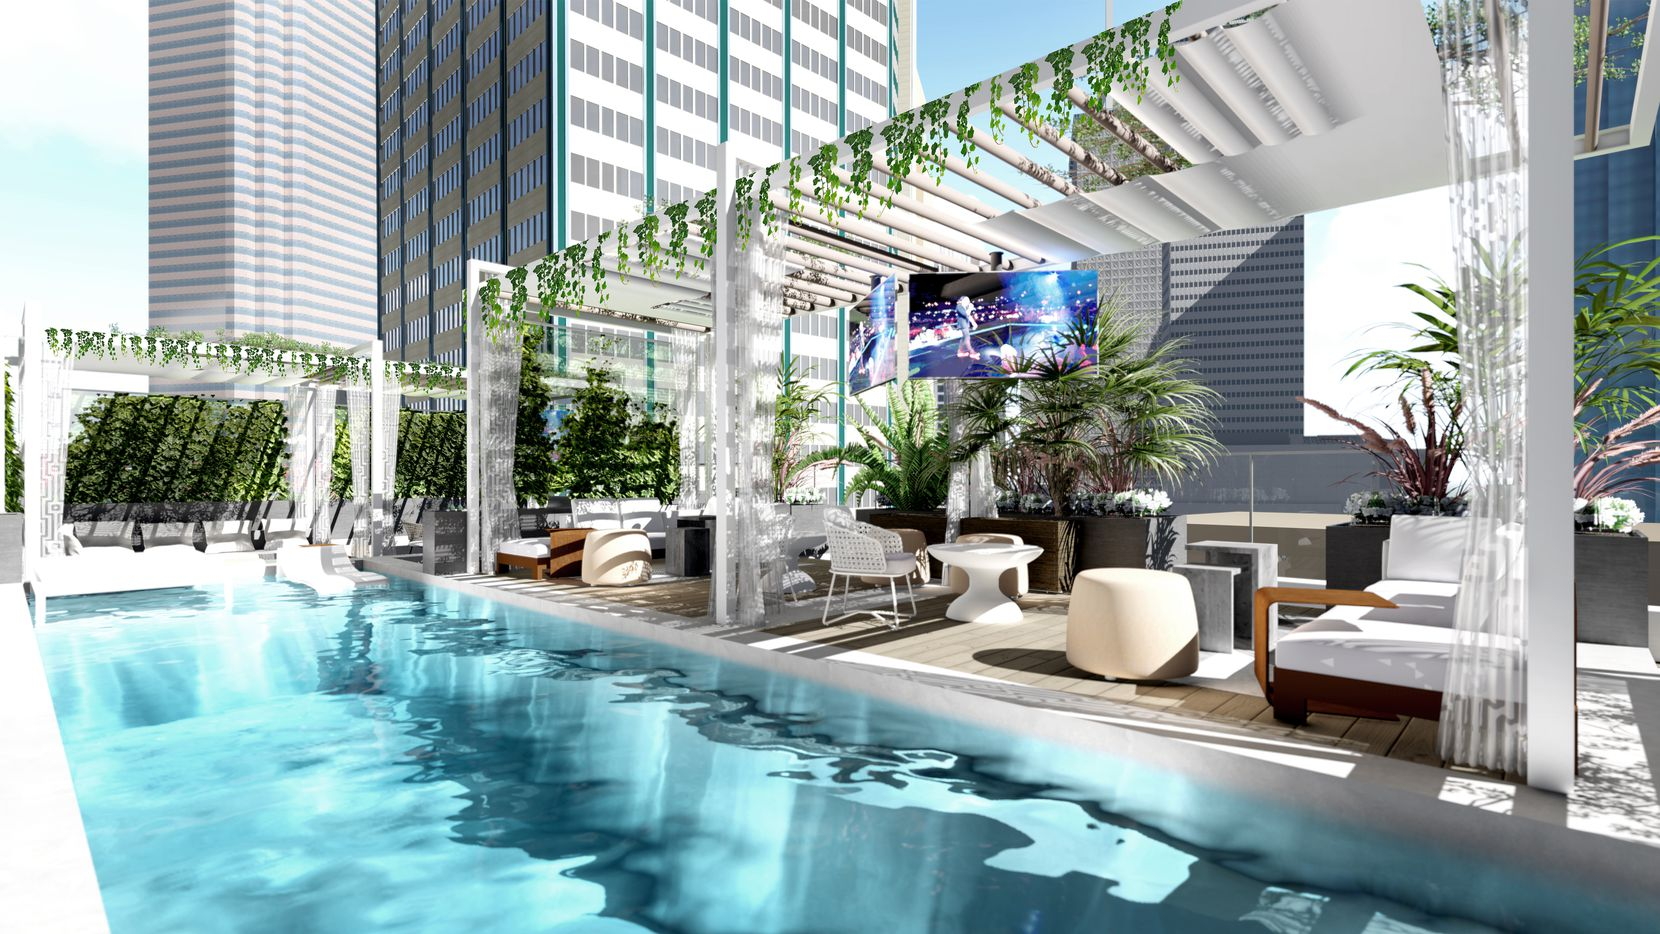 Residents at The Drever building on Elm Street will be able to take a dip in the rooftop pool.